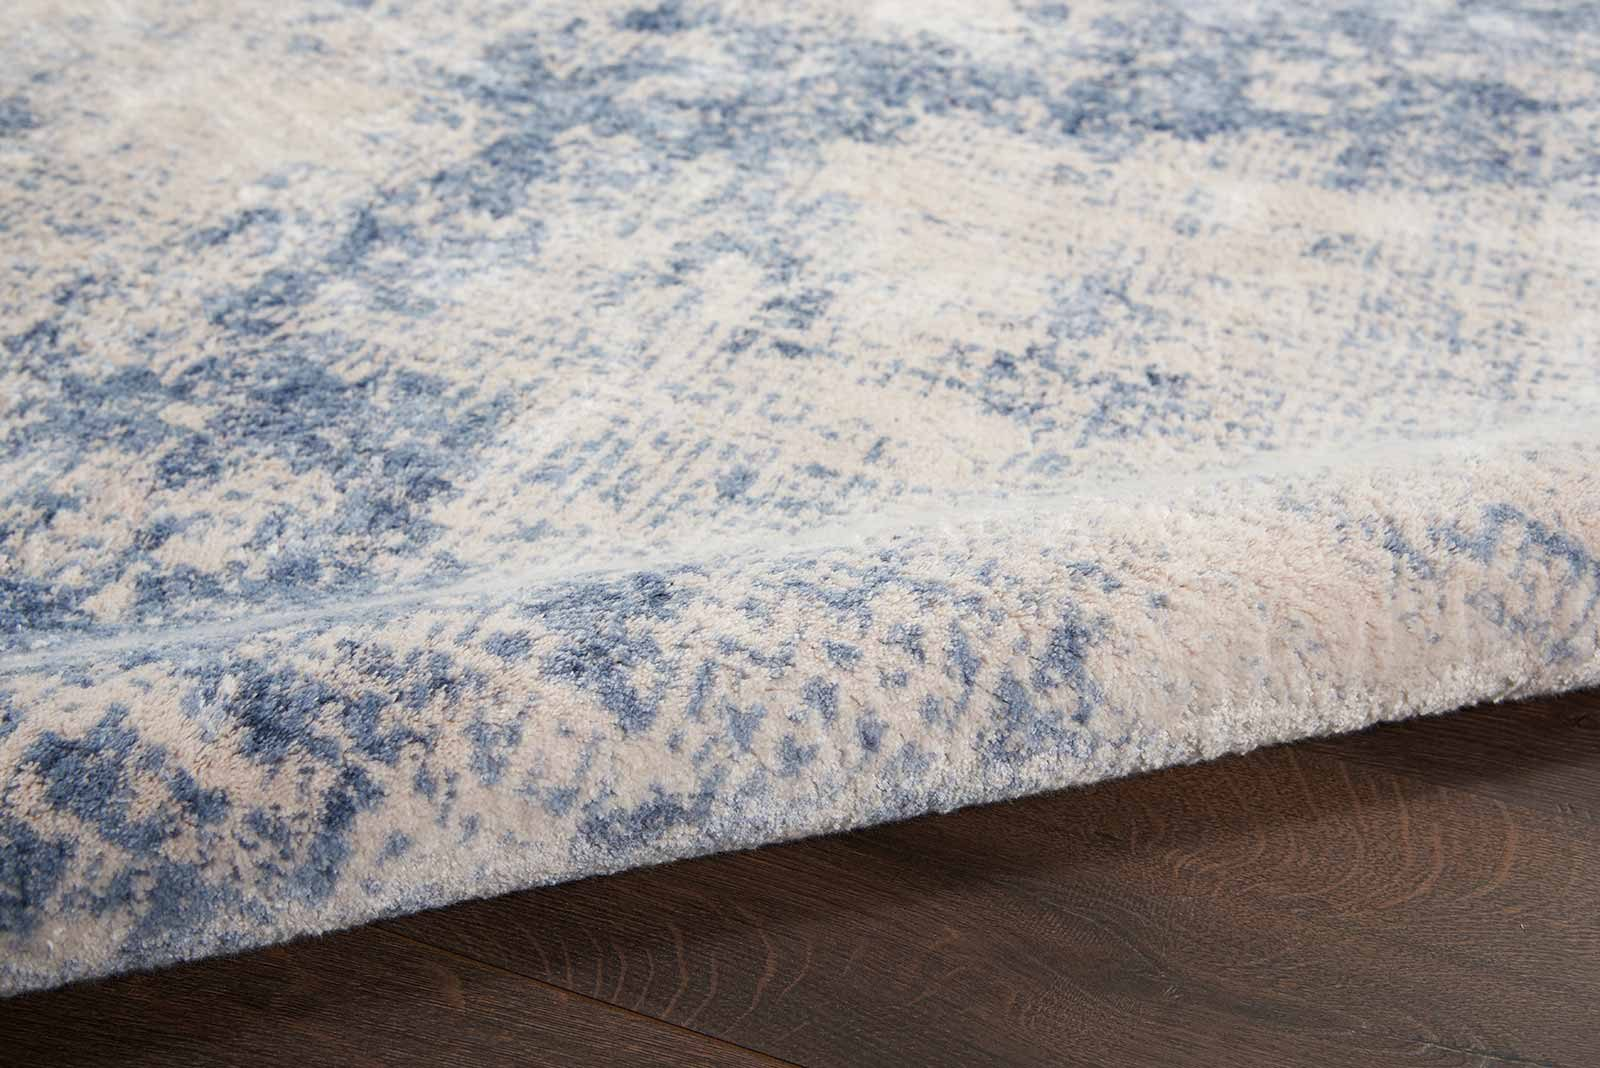 Andessi tapijt Silky Textures SLY01 IVORY BLUE 4x6 099446709677 TX01 C